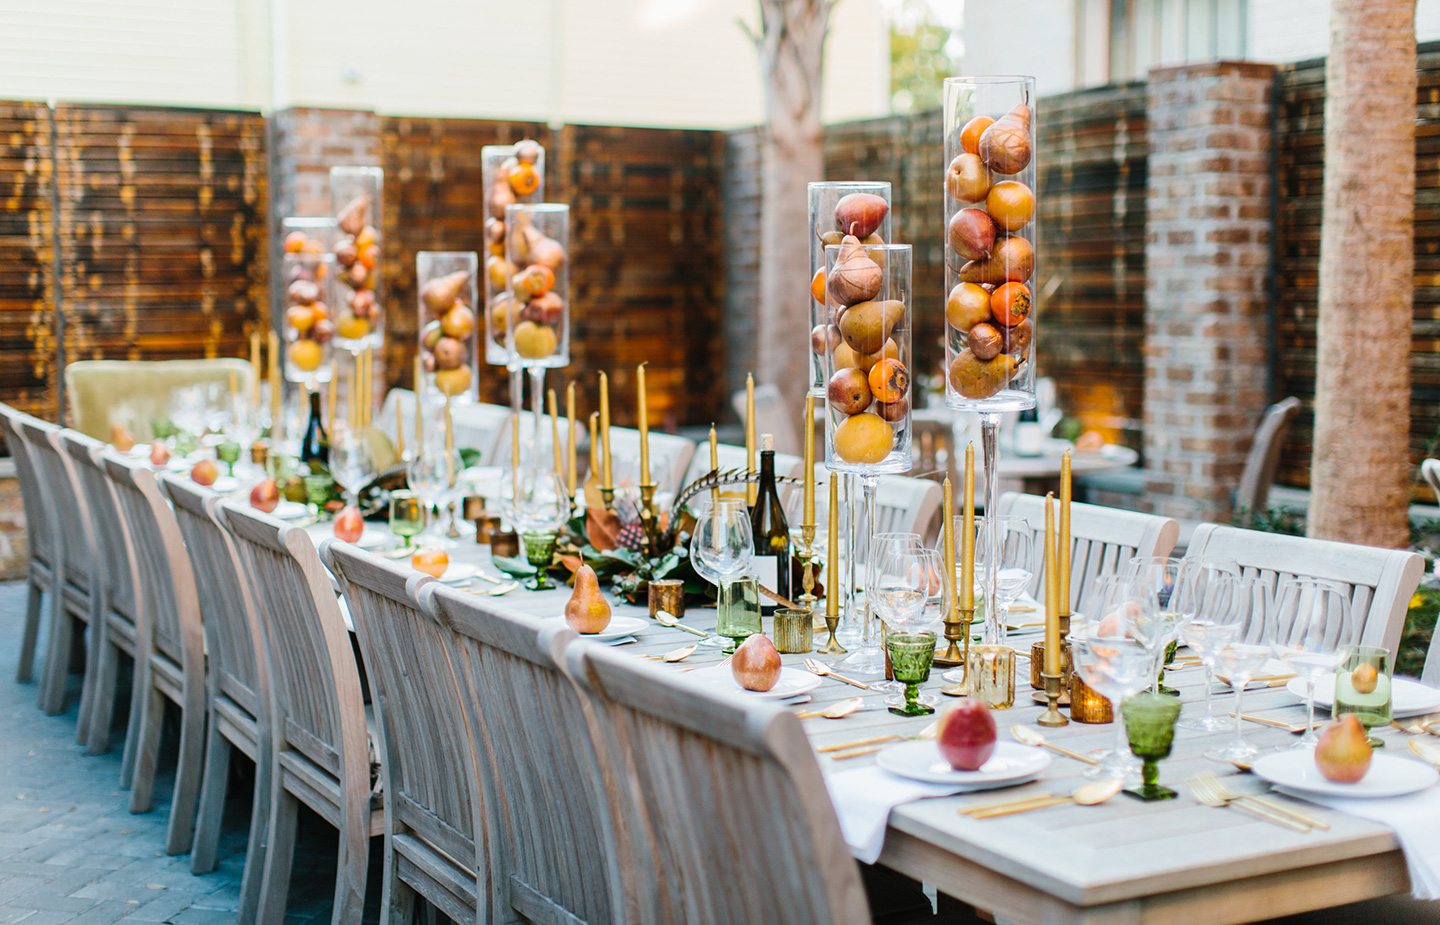 Hosting a Fall Fete